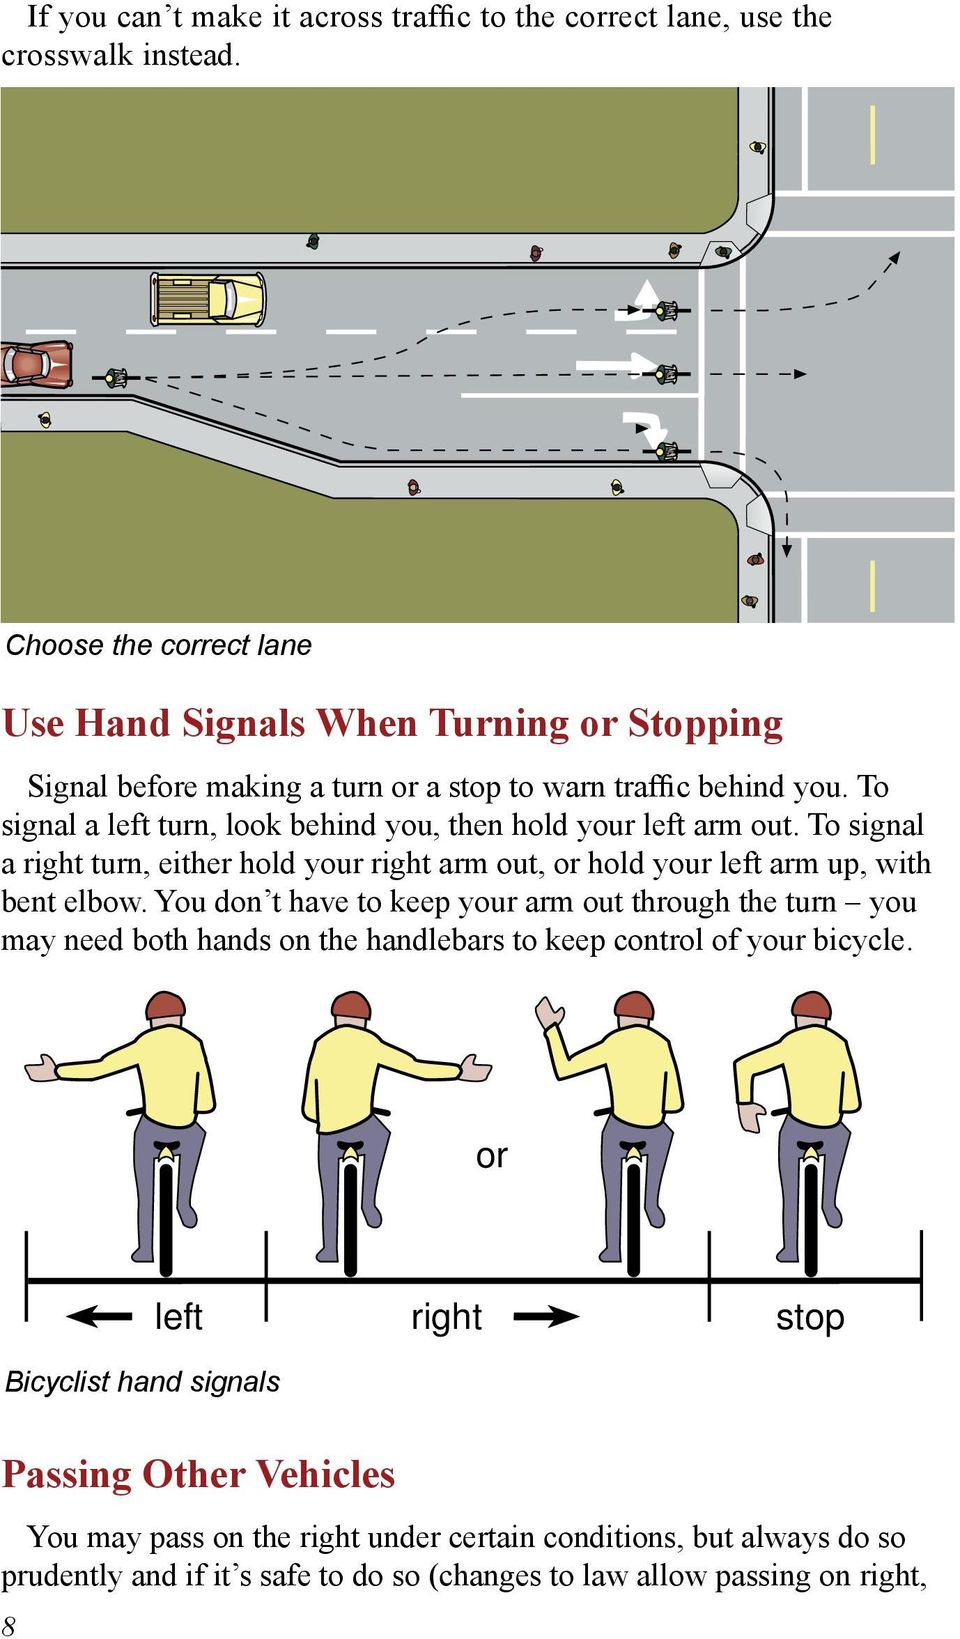 To signal a left turn, look behind you, then hold your left arm out. To signal a right turn, either hold your right arm out, or hold your left arm up, with bent elbow.